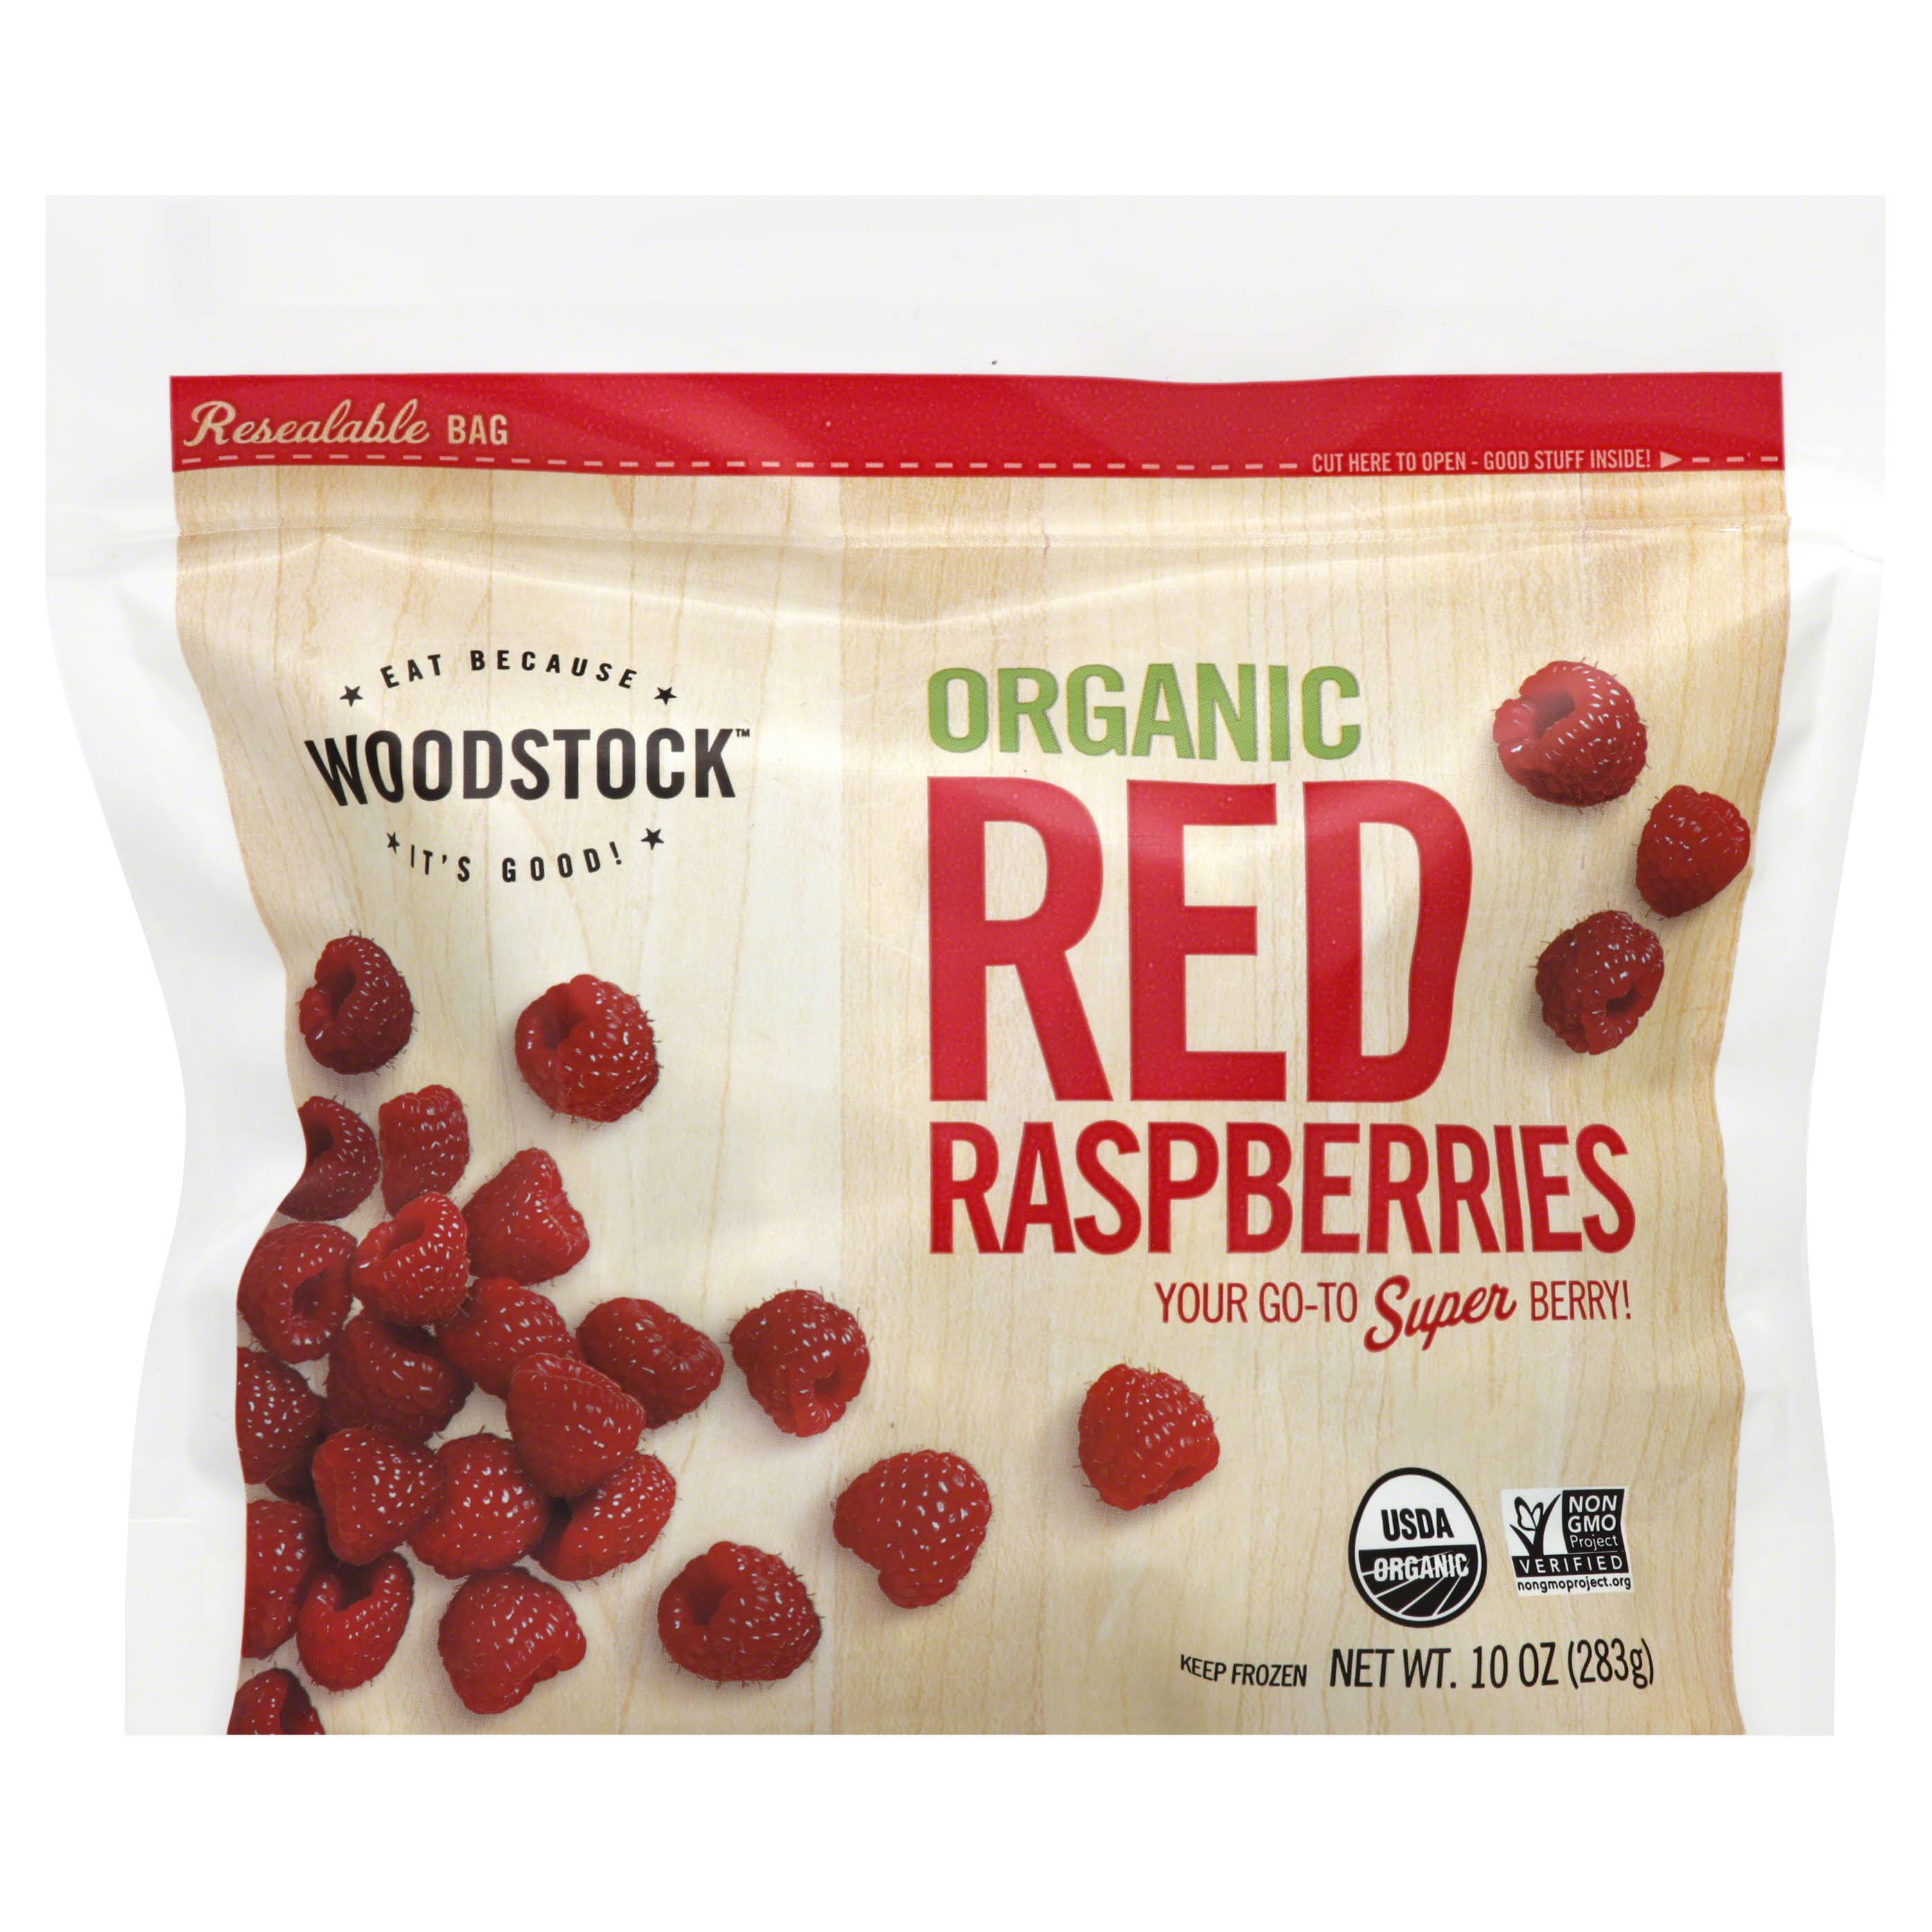 Woodstock Raspberries, Red, Organic - 10 oz